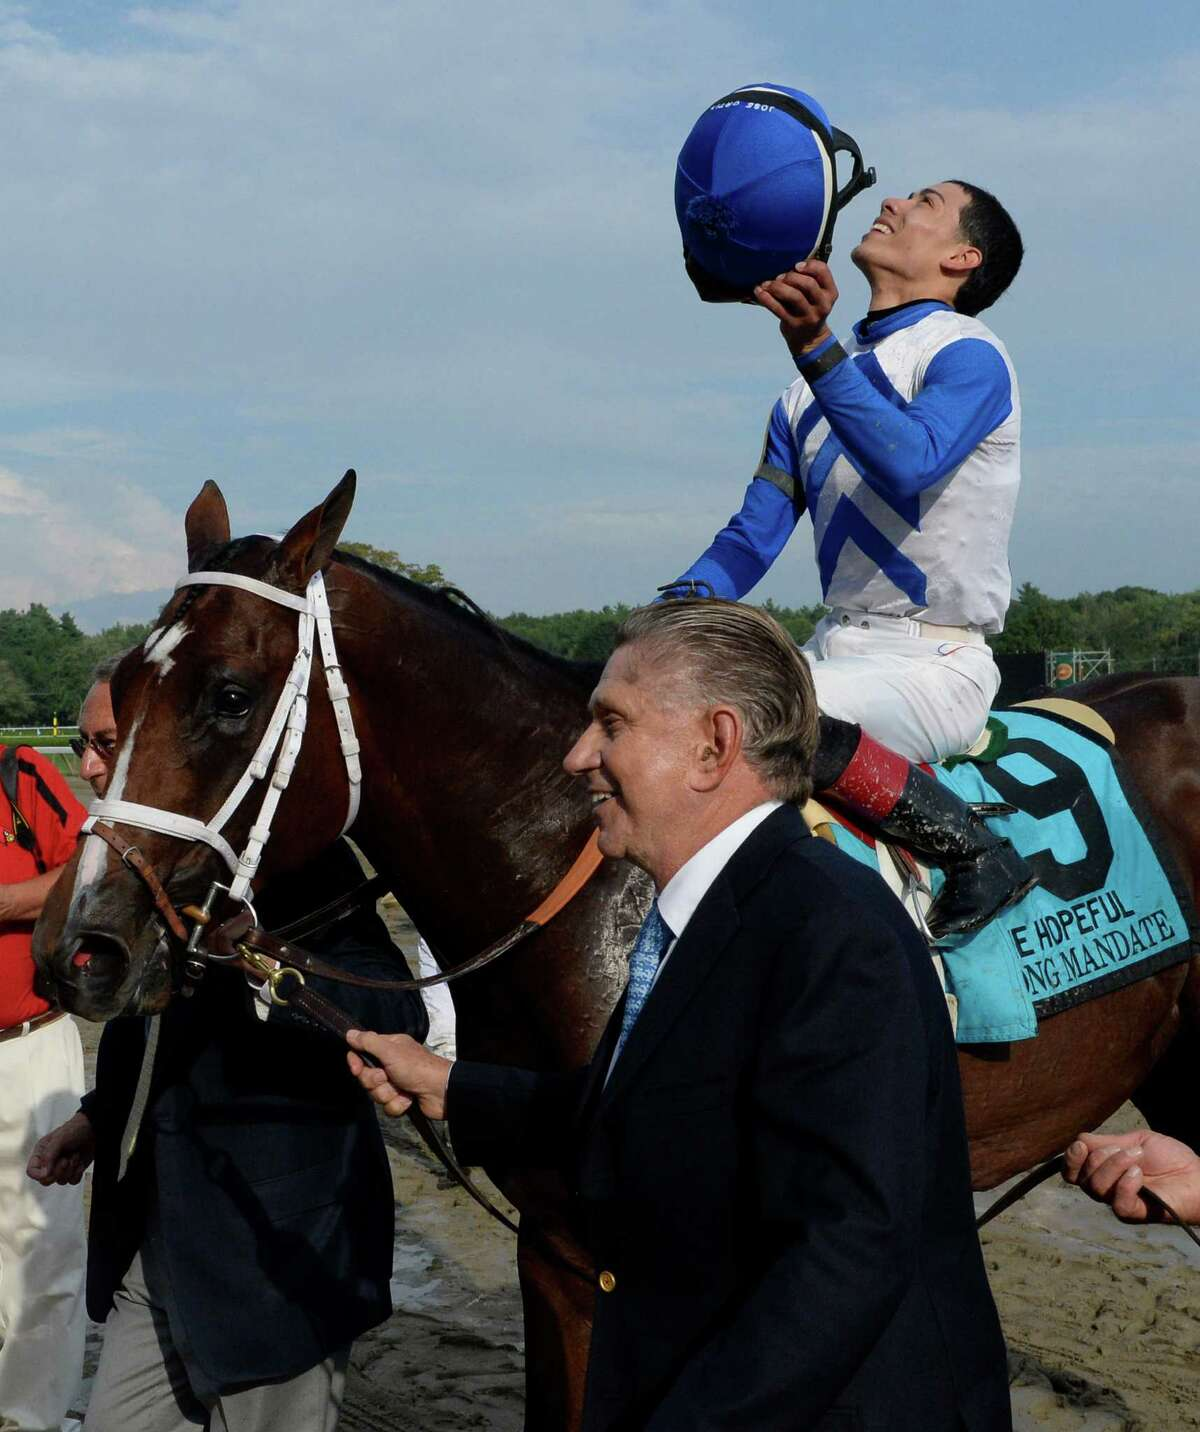 Jockey Jose Ortiz looks to the sky as he sits atop Strong Mandate while being led to the winner's circle by owner Bob Baker after winning the 109th running of The Hopeful Sept. 2, 2013, at the Saratoga Race Course in Saratoga Springs, N.Y. (Skip Dickstein/Times Union)